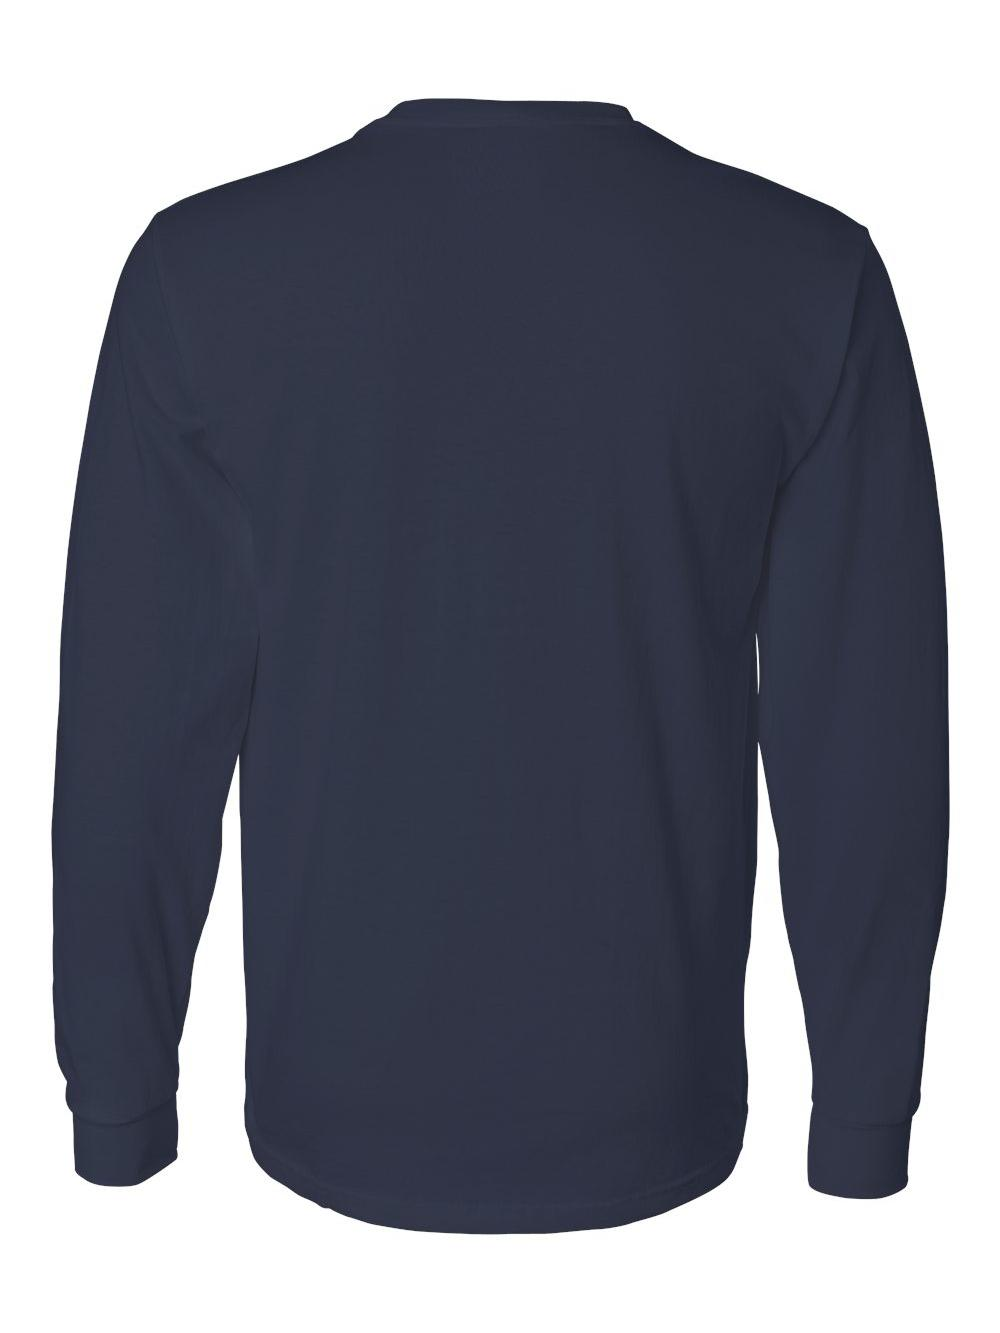 Fruit-of-the-Loom-HD-Cotton-Long-Sleeve-T-Shirt-4930R thumbnail 37